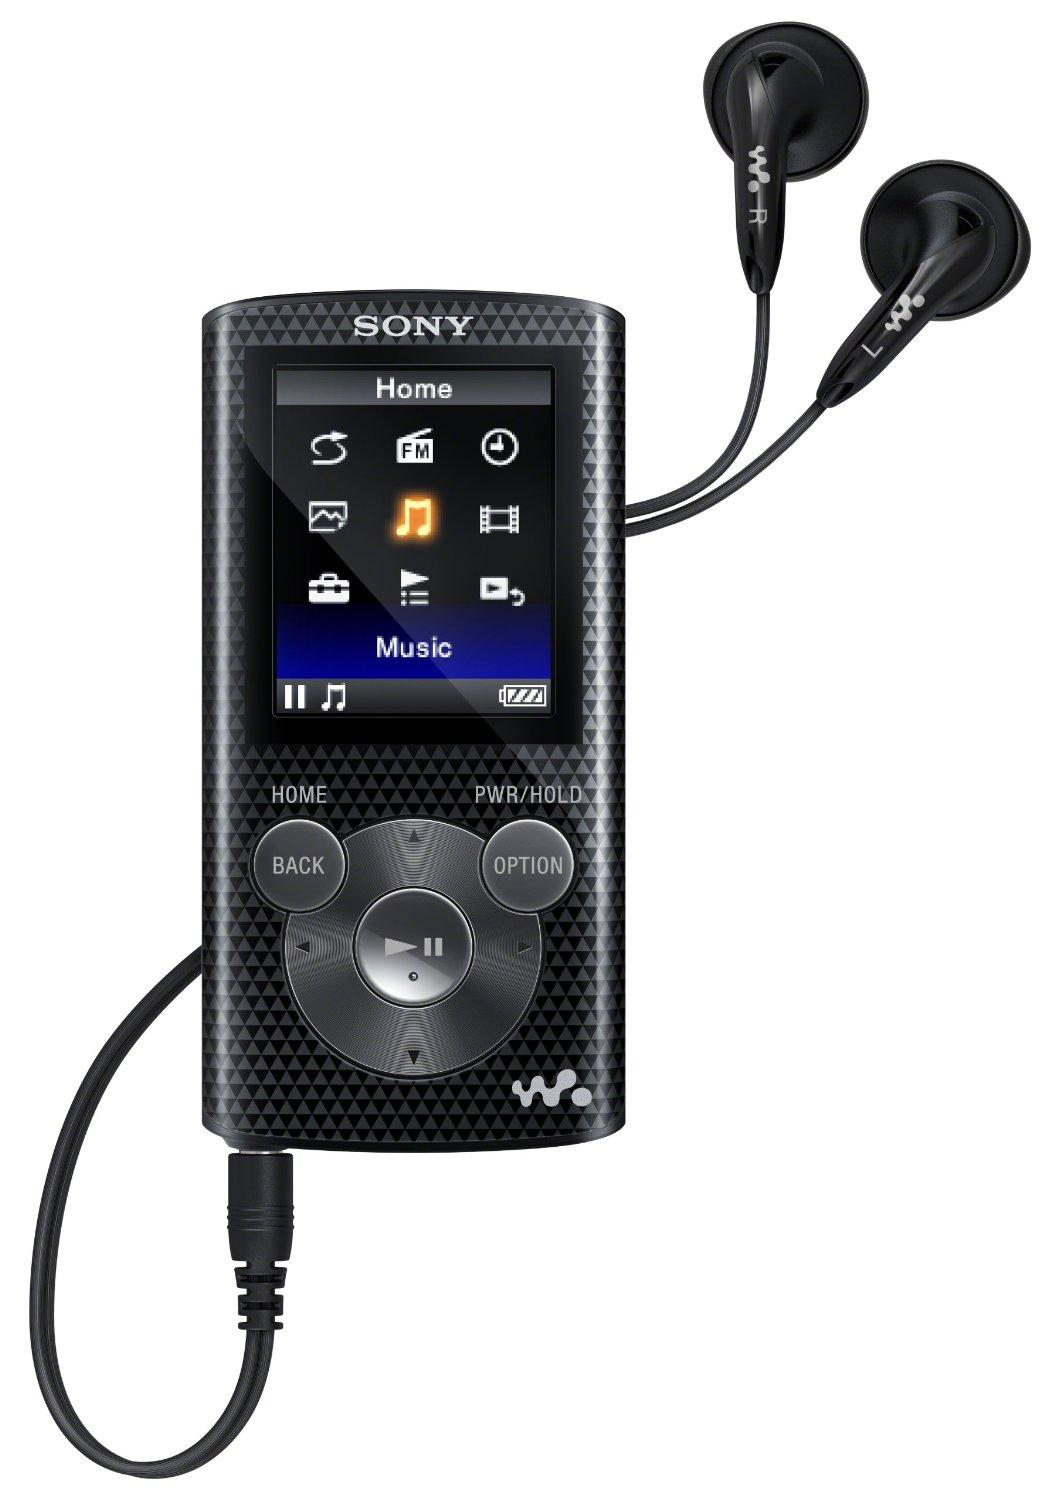 Sony NWZE383 4 GB Walkman MP3 Video Player